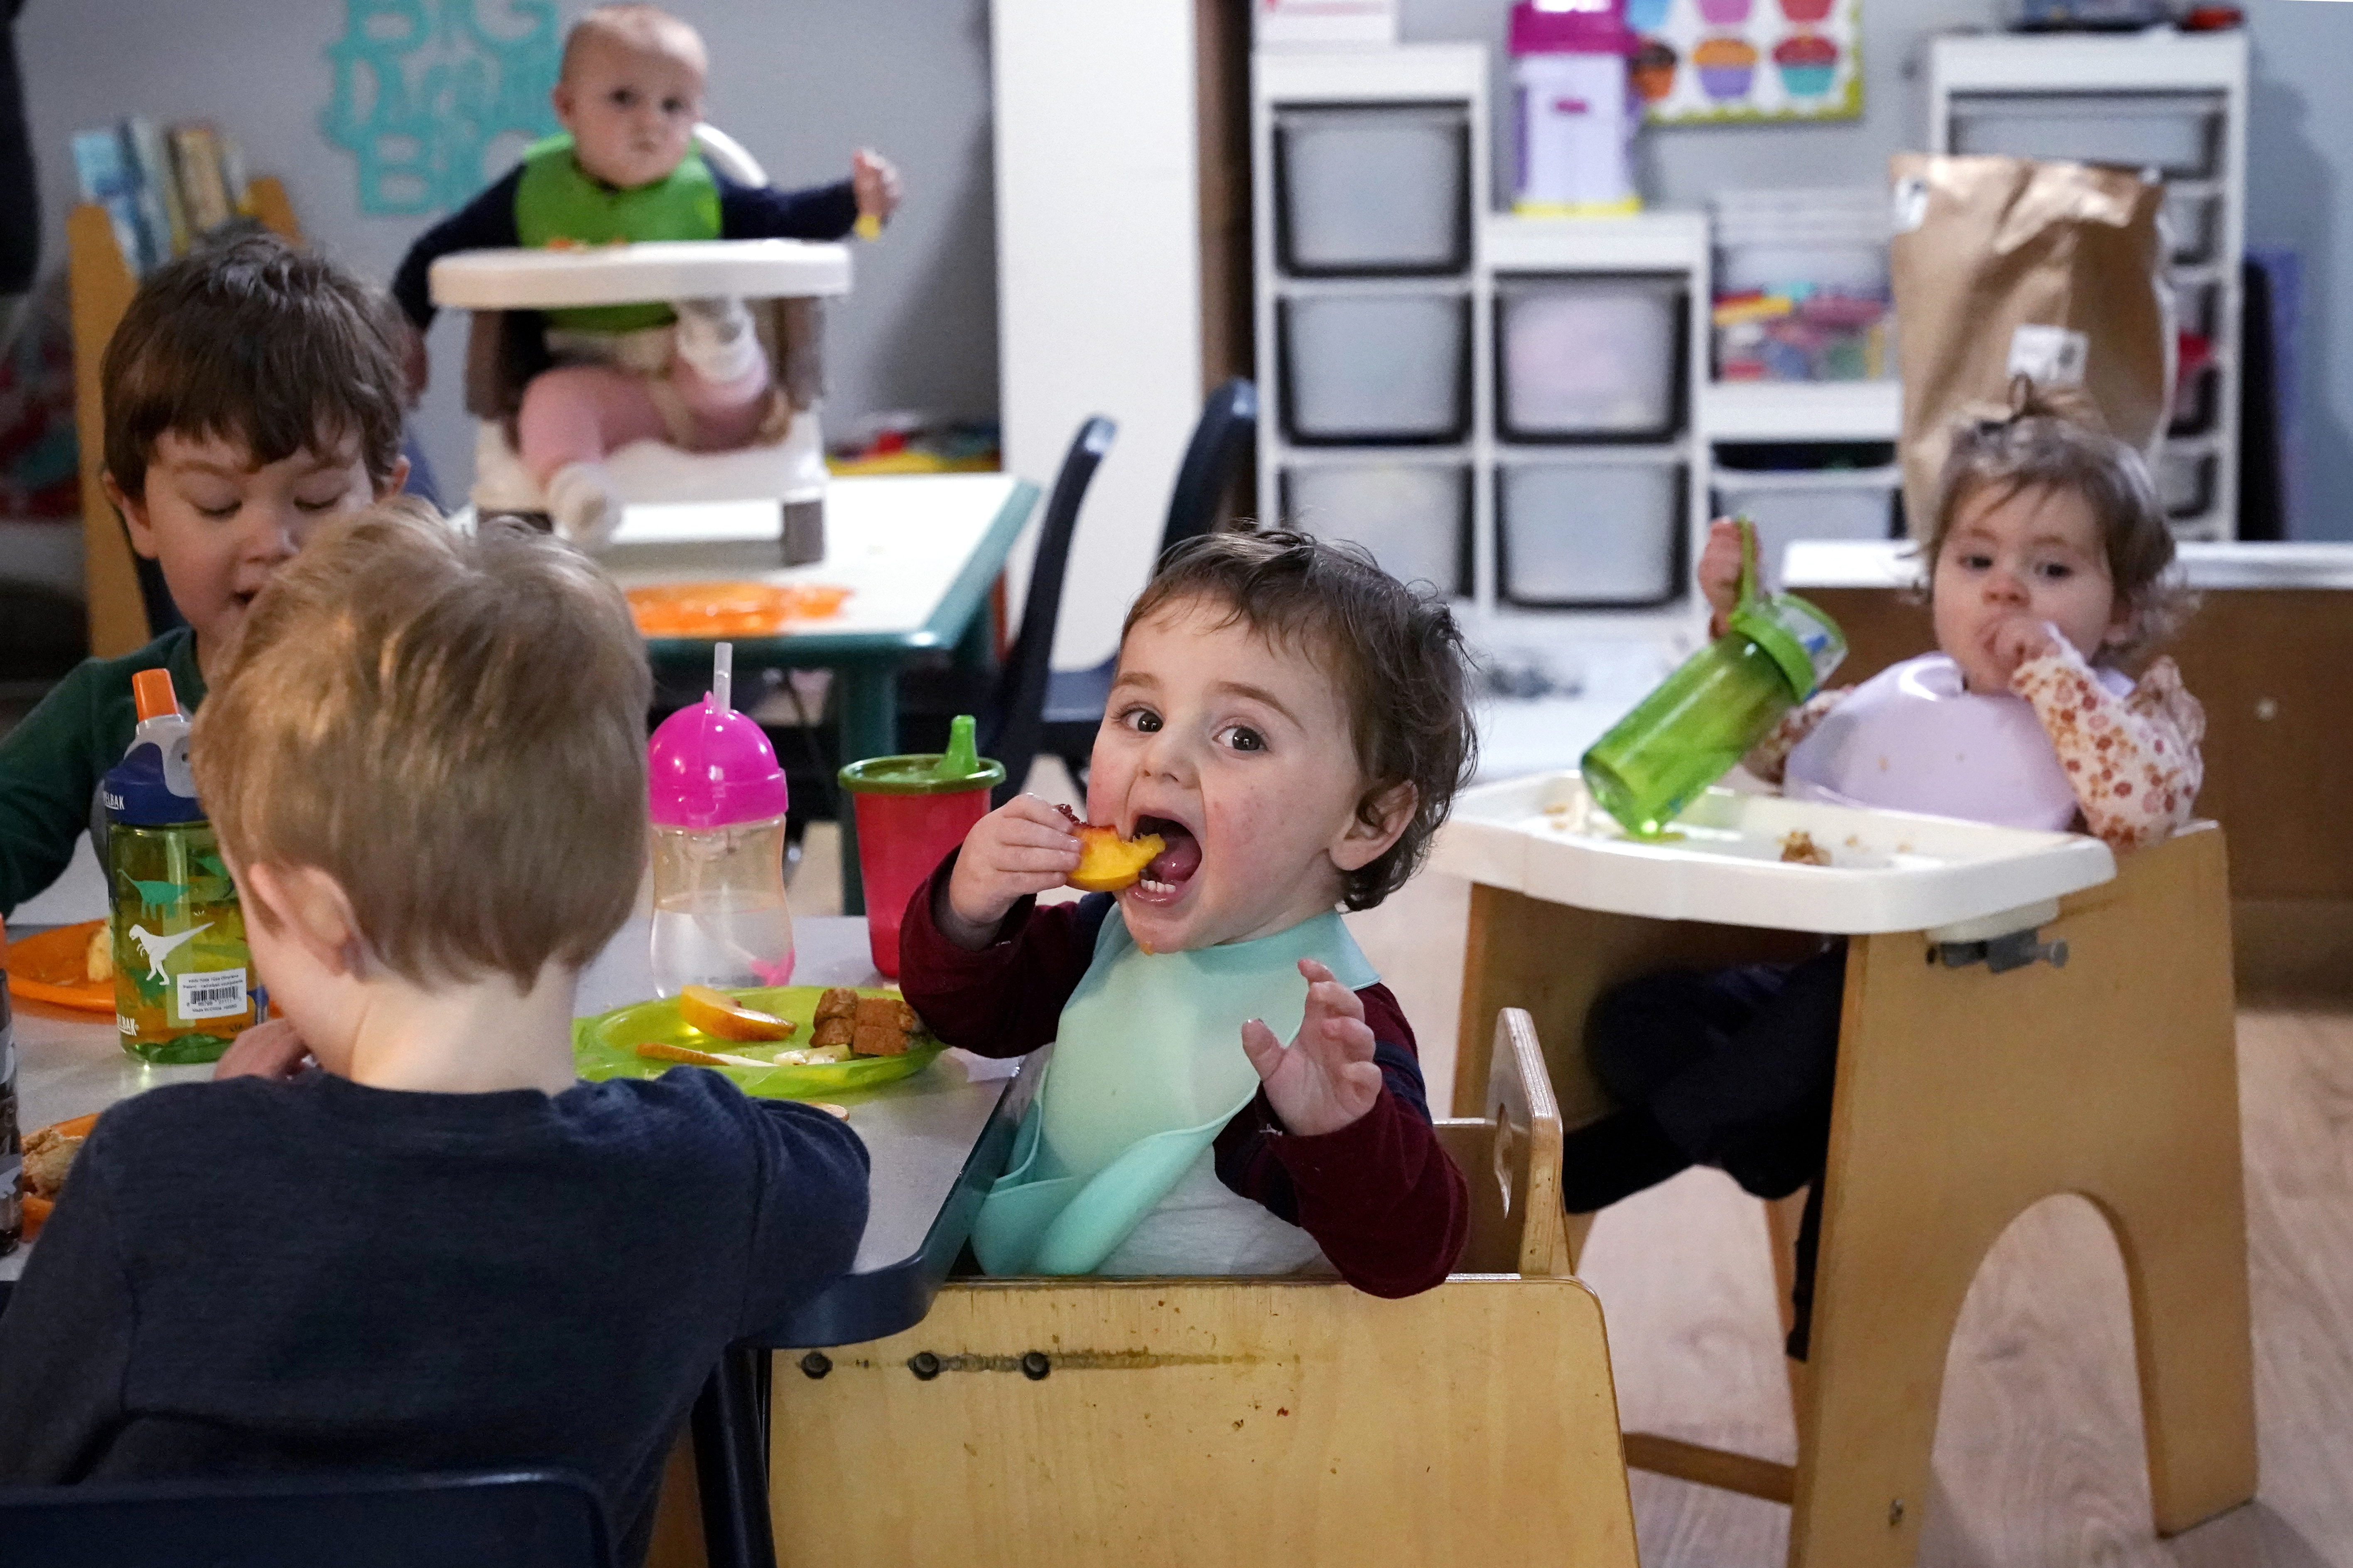 """Kids eat lunch at Forever Young Daycare in the Seattle suburb of Mountlake Terrace. Owner Amy McCoy has had to do more of the child care work herself after being unable for half of this year to find a new assistant for her in-home child care who would accept the $16-an-hour pay for the entry-level job. """"Nobody wants to work for what I can afford to pay right now,"""" McCoy said."""